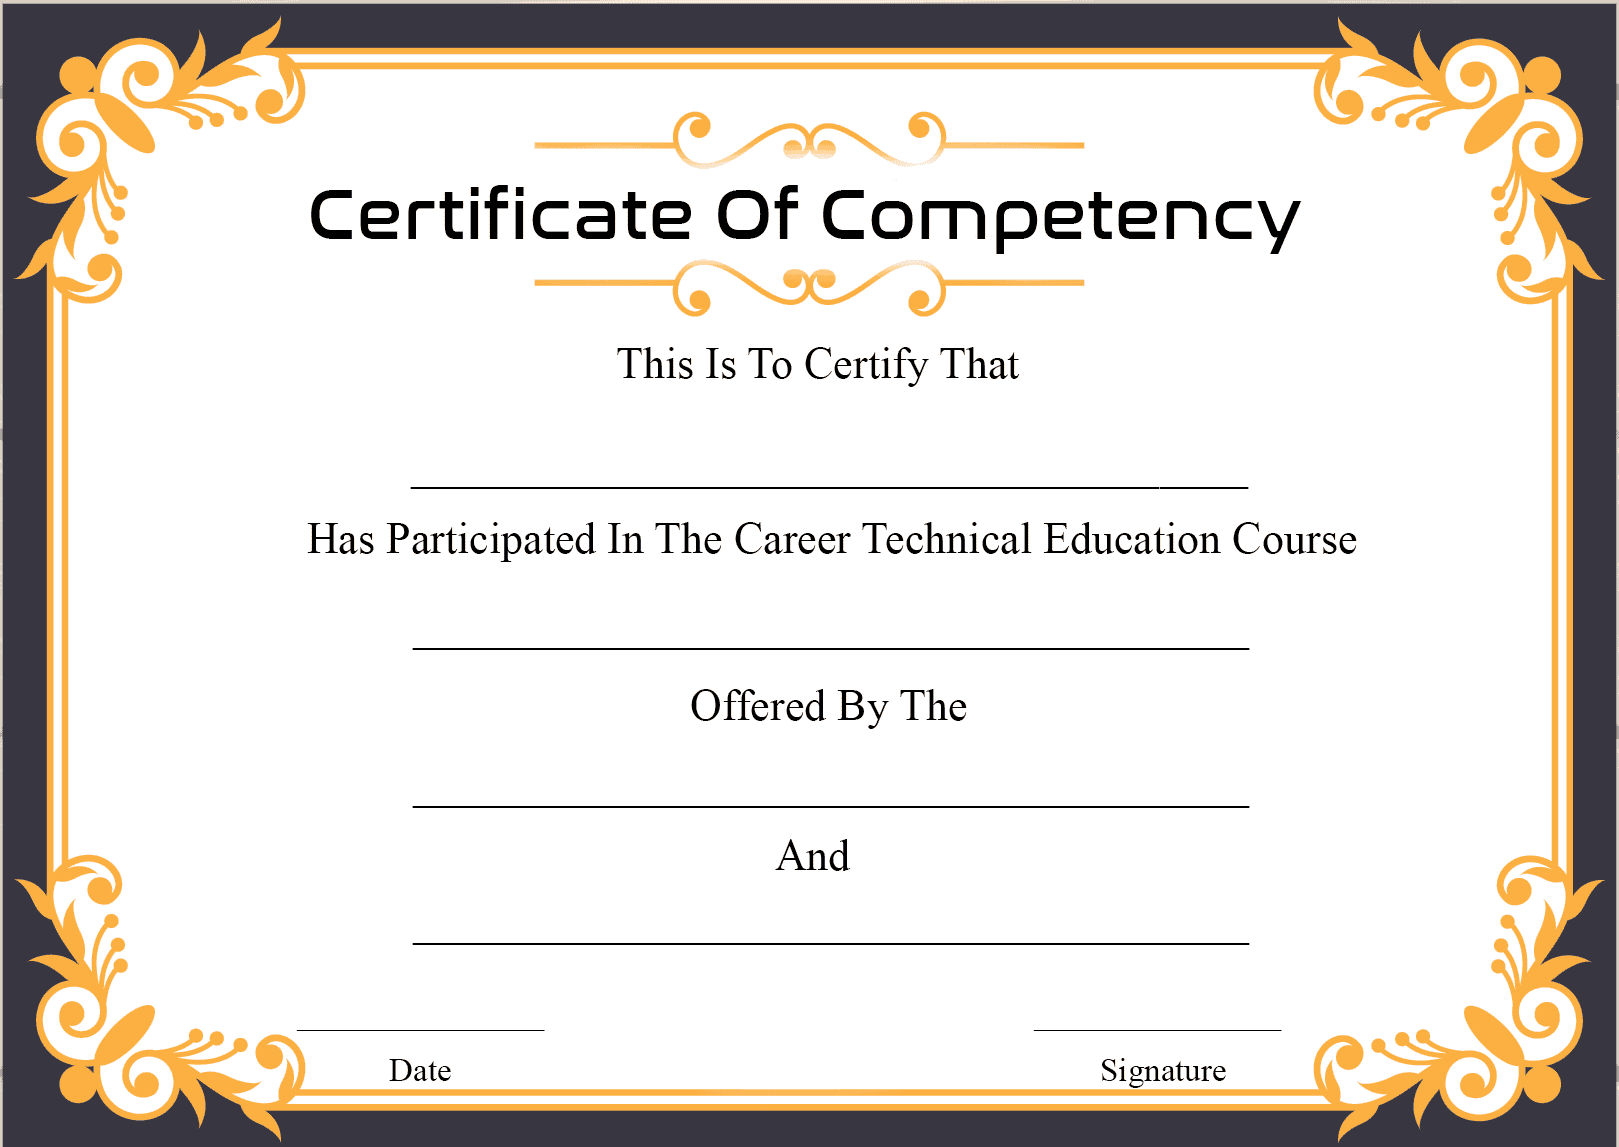 Government Certificate Of Competency